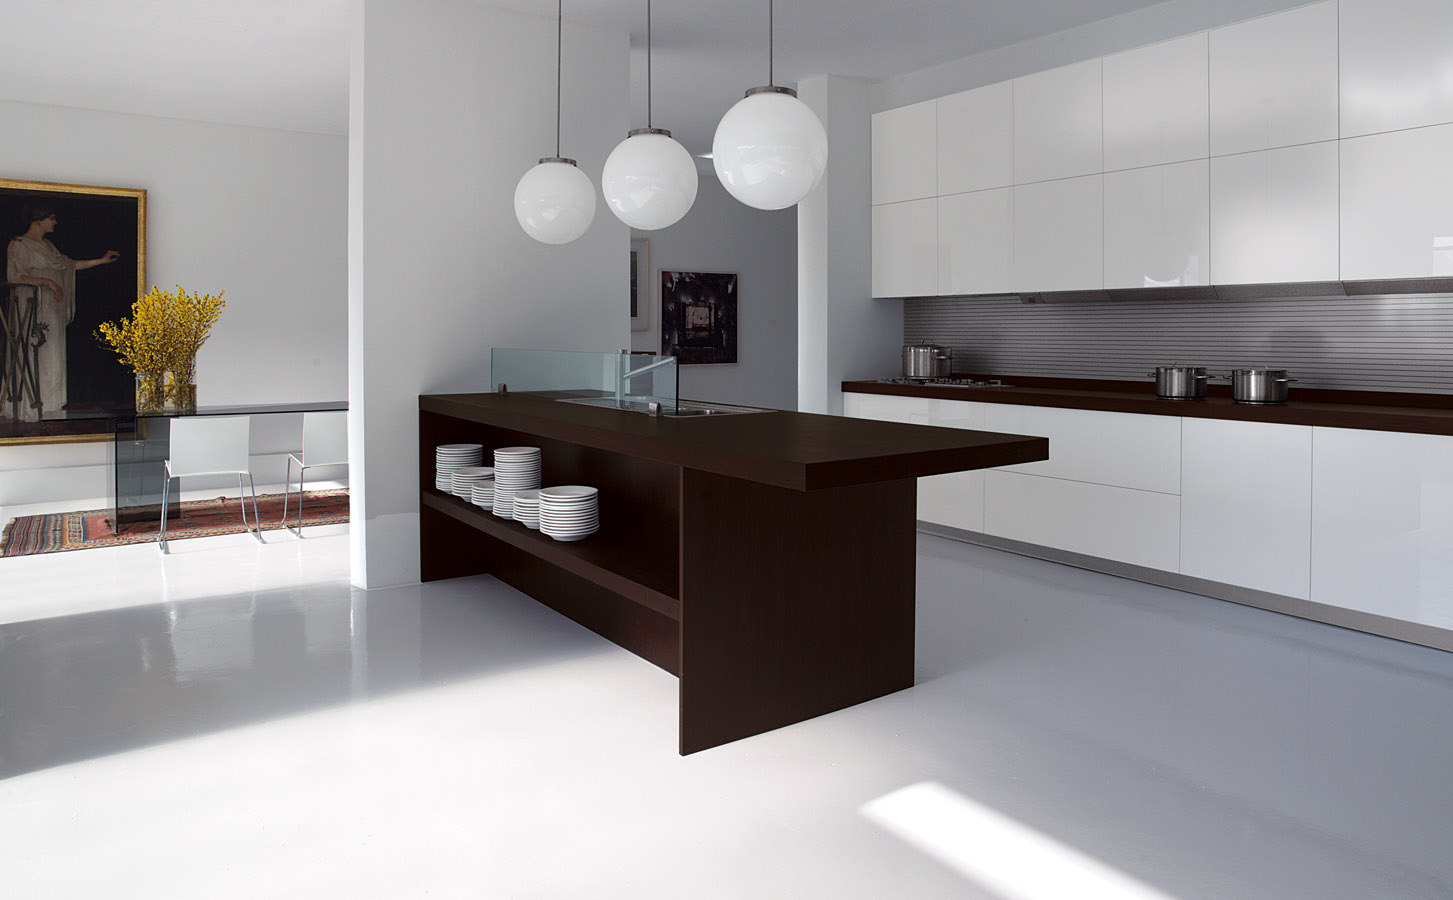 Contemporary kitchen interiors afreakatheart for Modern kitchen interior